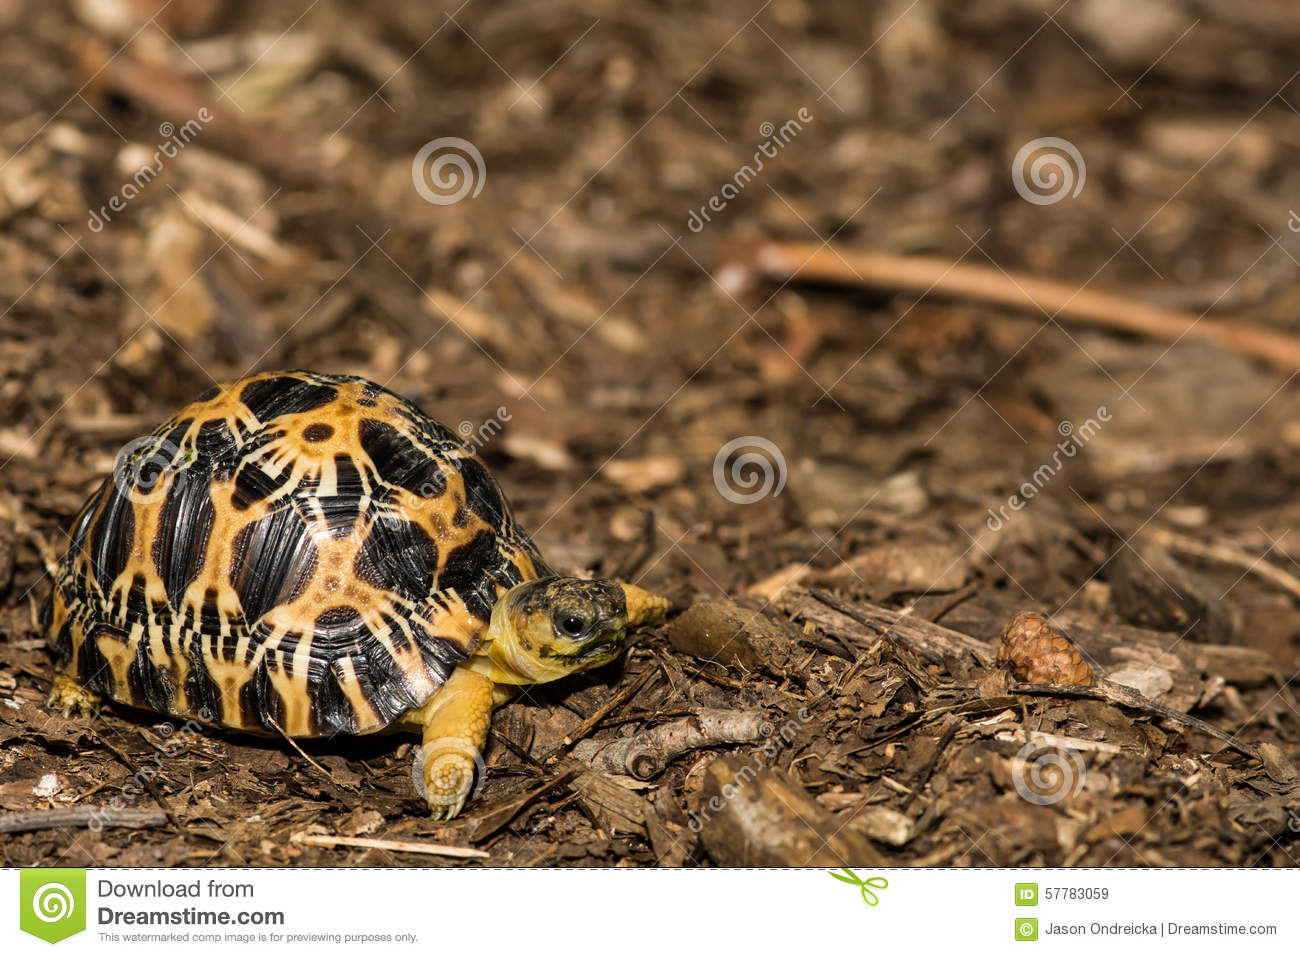 Radiated Tortoise clipart #14, Download drawings